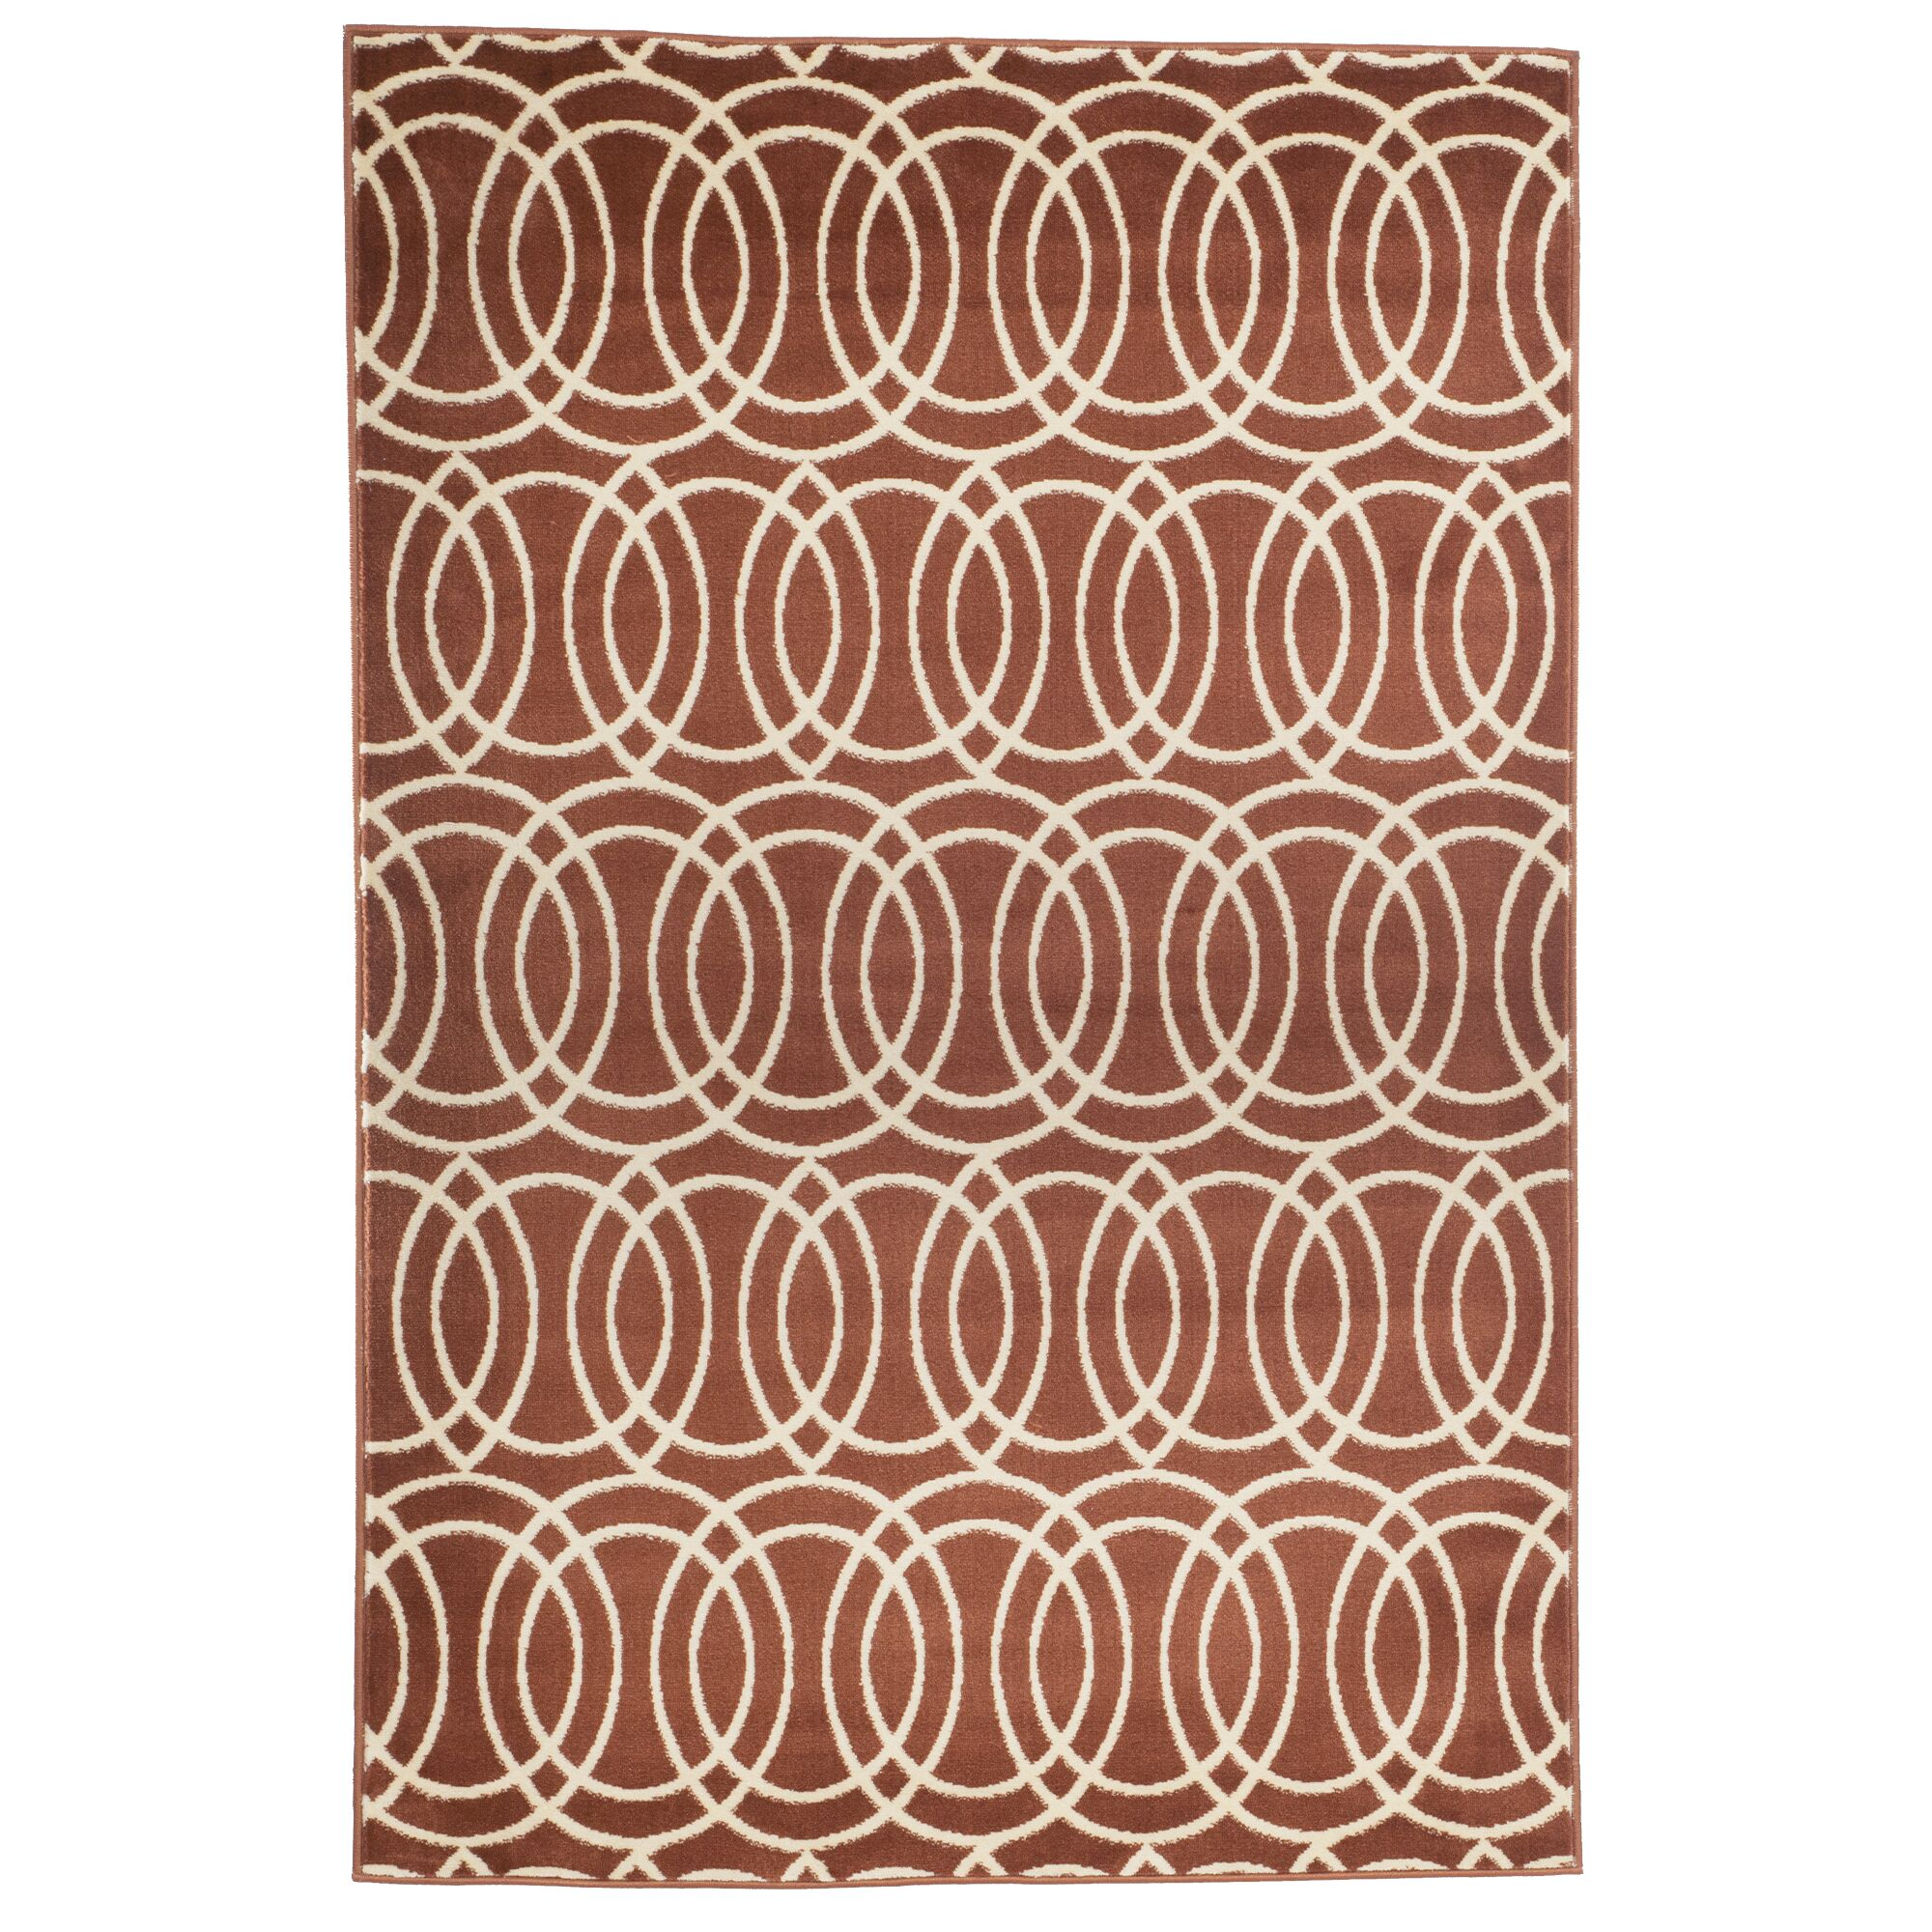 Geometric Brick and Gold Area Rug Rug Size: Rectangle 5' x 7'7